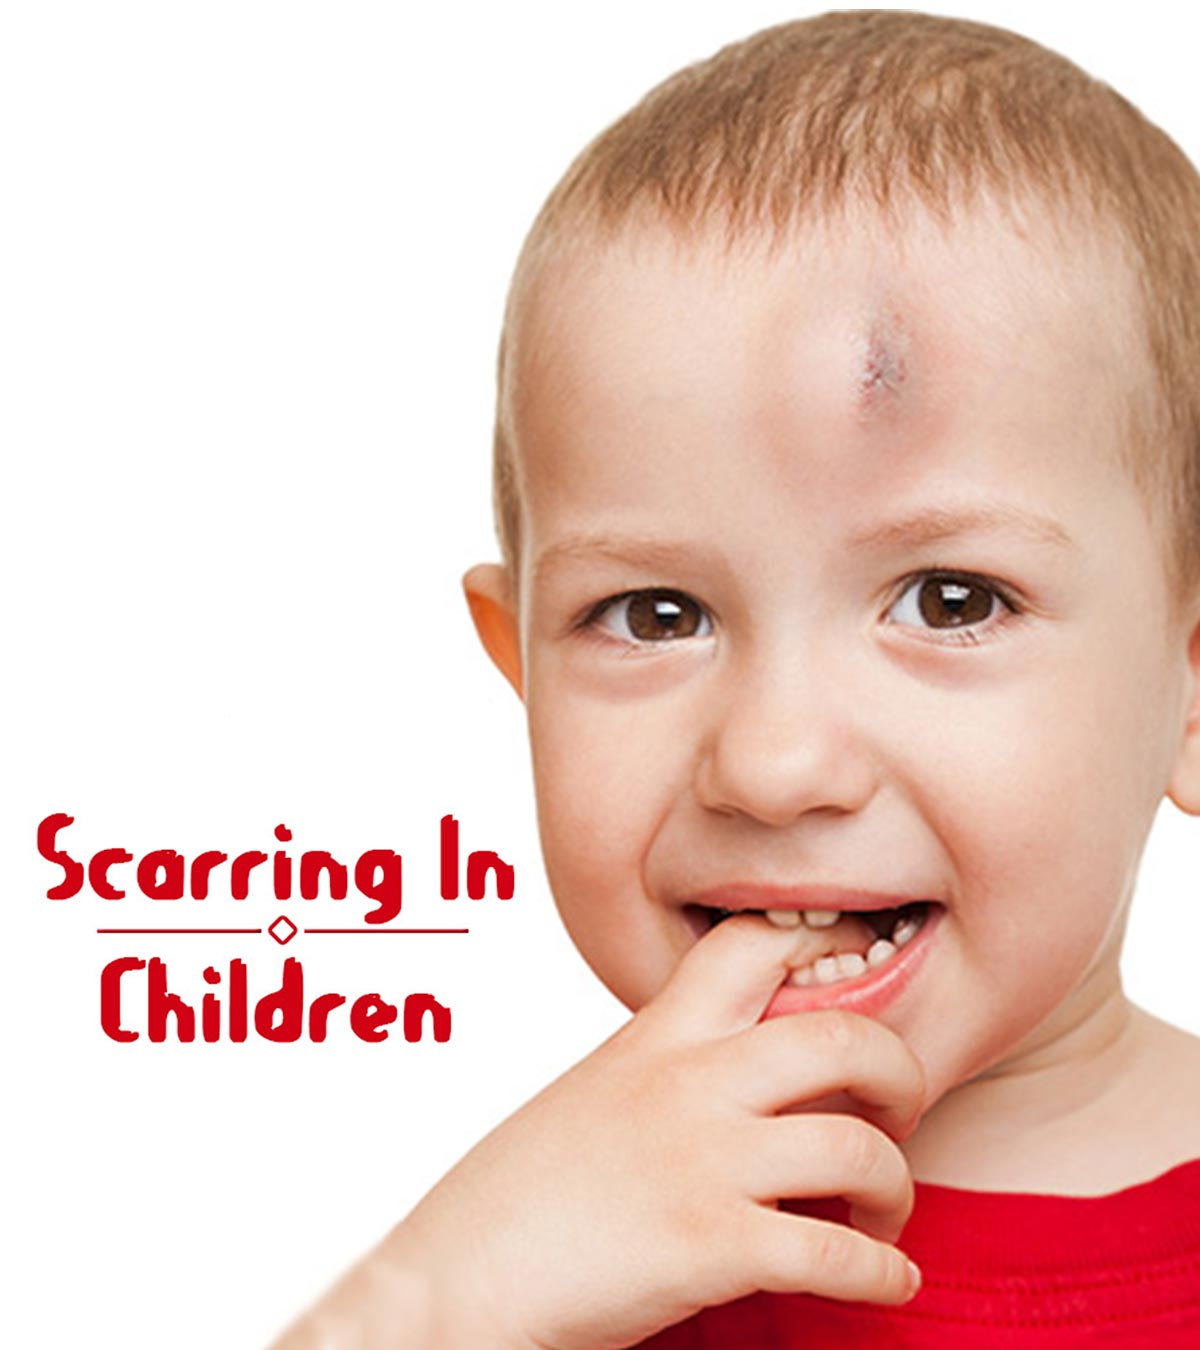 8 Simple Ways To Treat Kids Scars And Prevention Tips